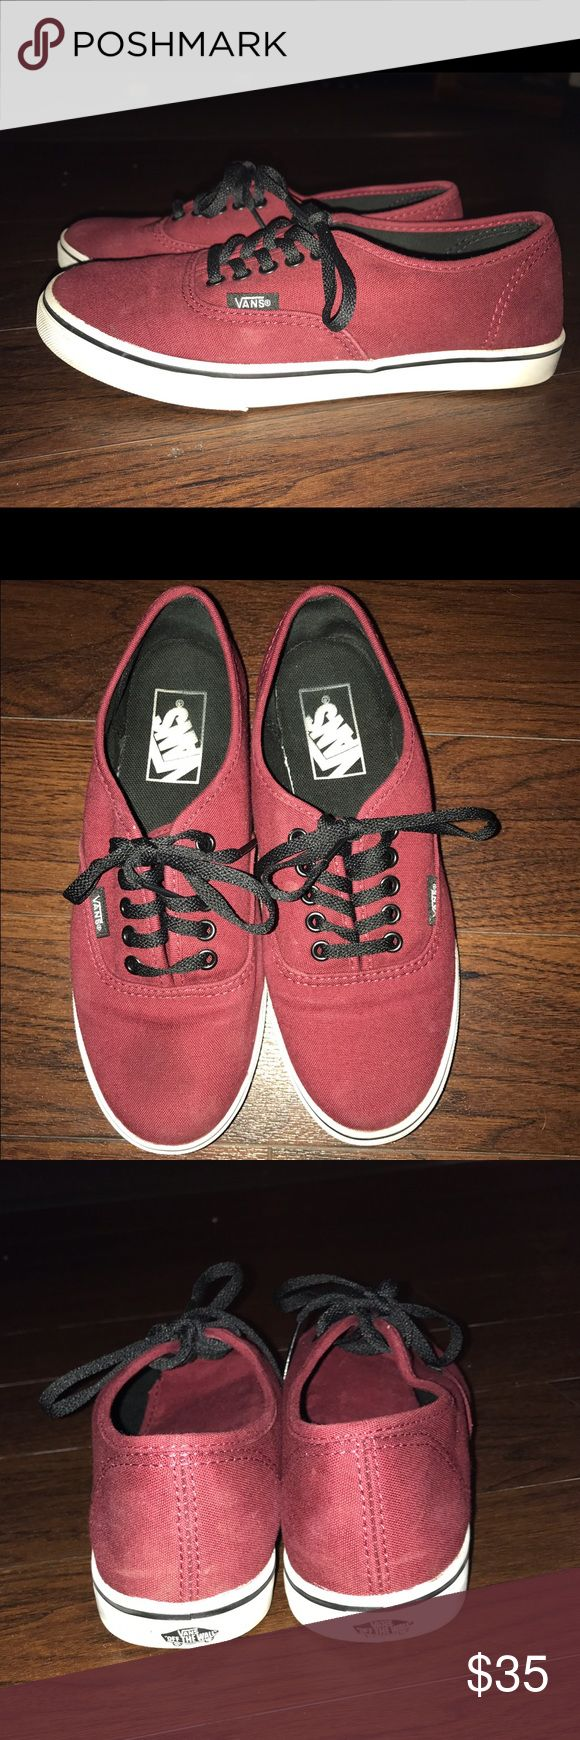 Maroon Vans For sale is a gently worn pair of maroon vans. They are in good condition, as they were not worn a lot. The only thing is they have a slight stain on the front of the left shoe, as pictured. Hardly noticeable when wearing but still wanted to point it out! :) thanks! Vans Shoes Sneakers